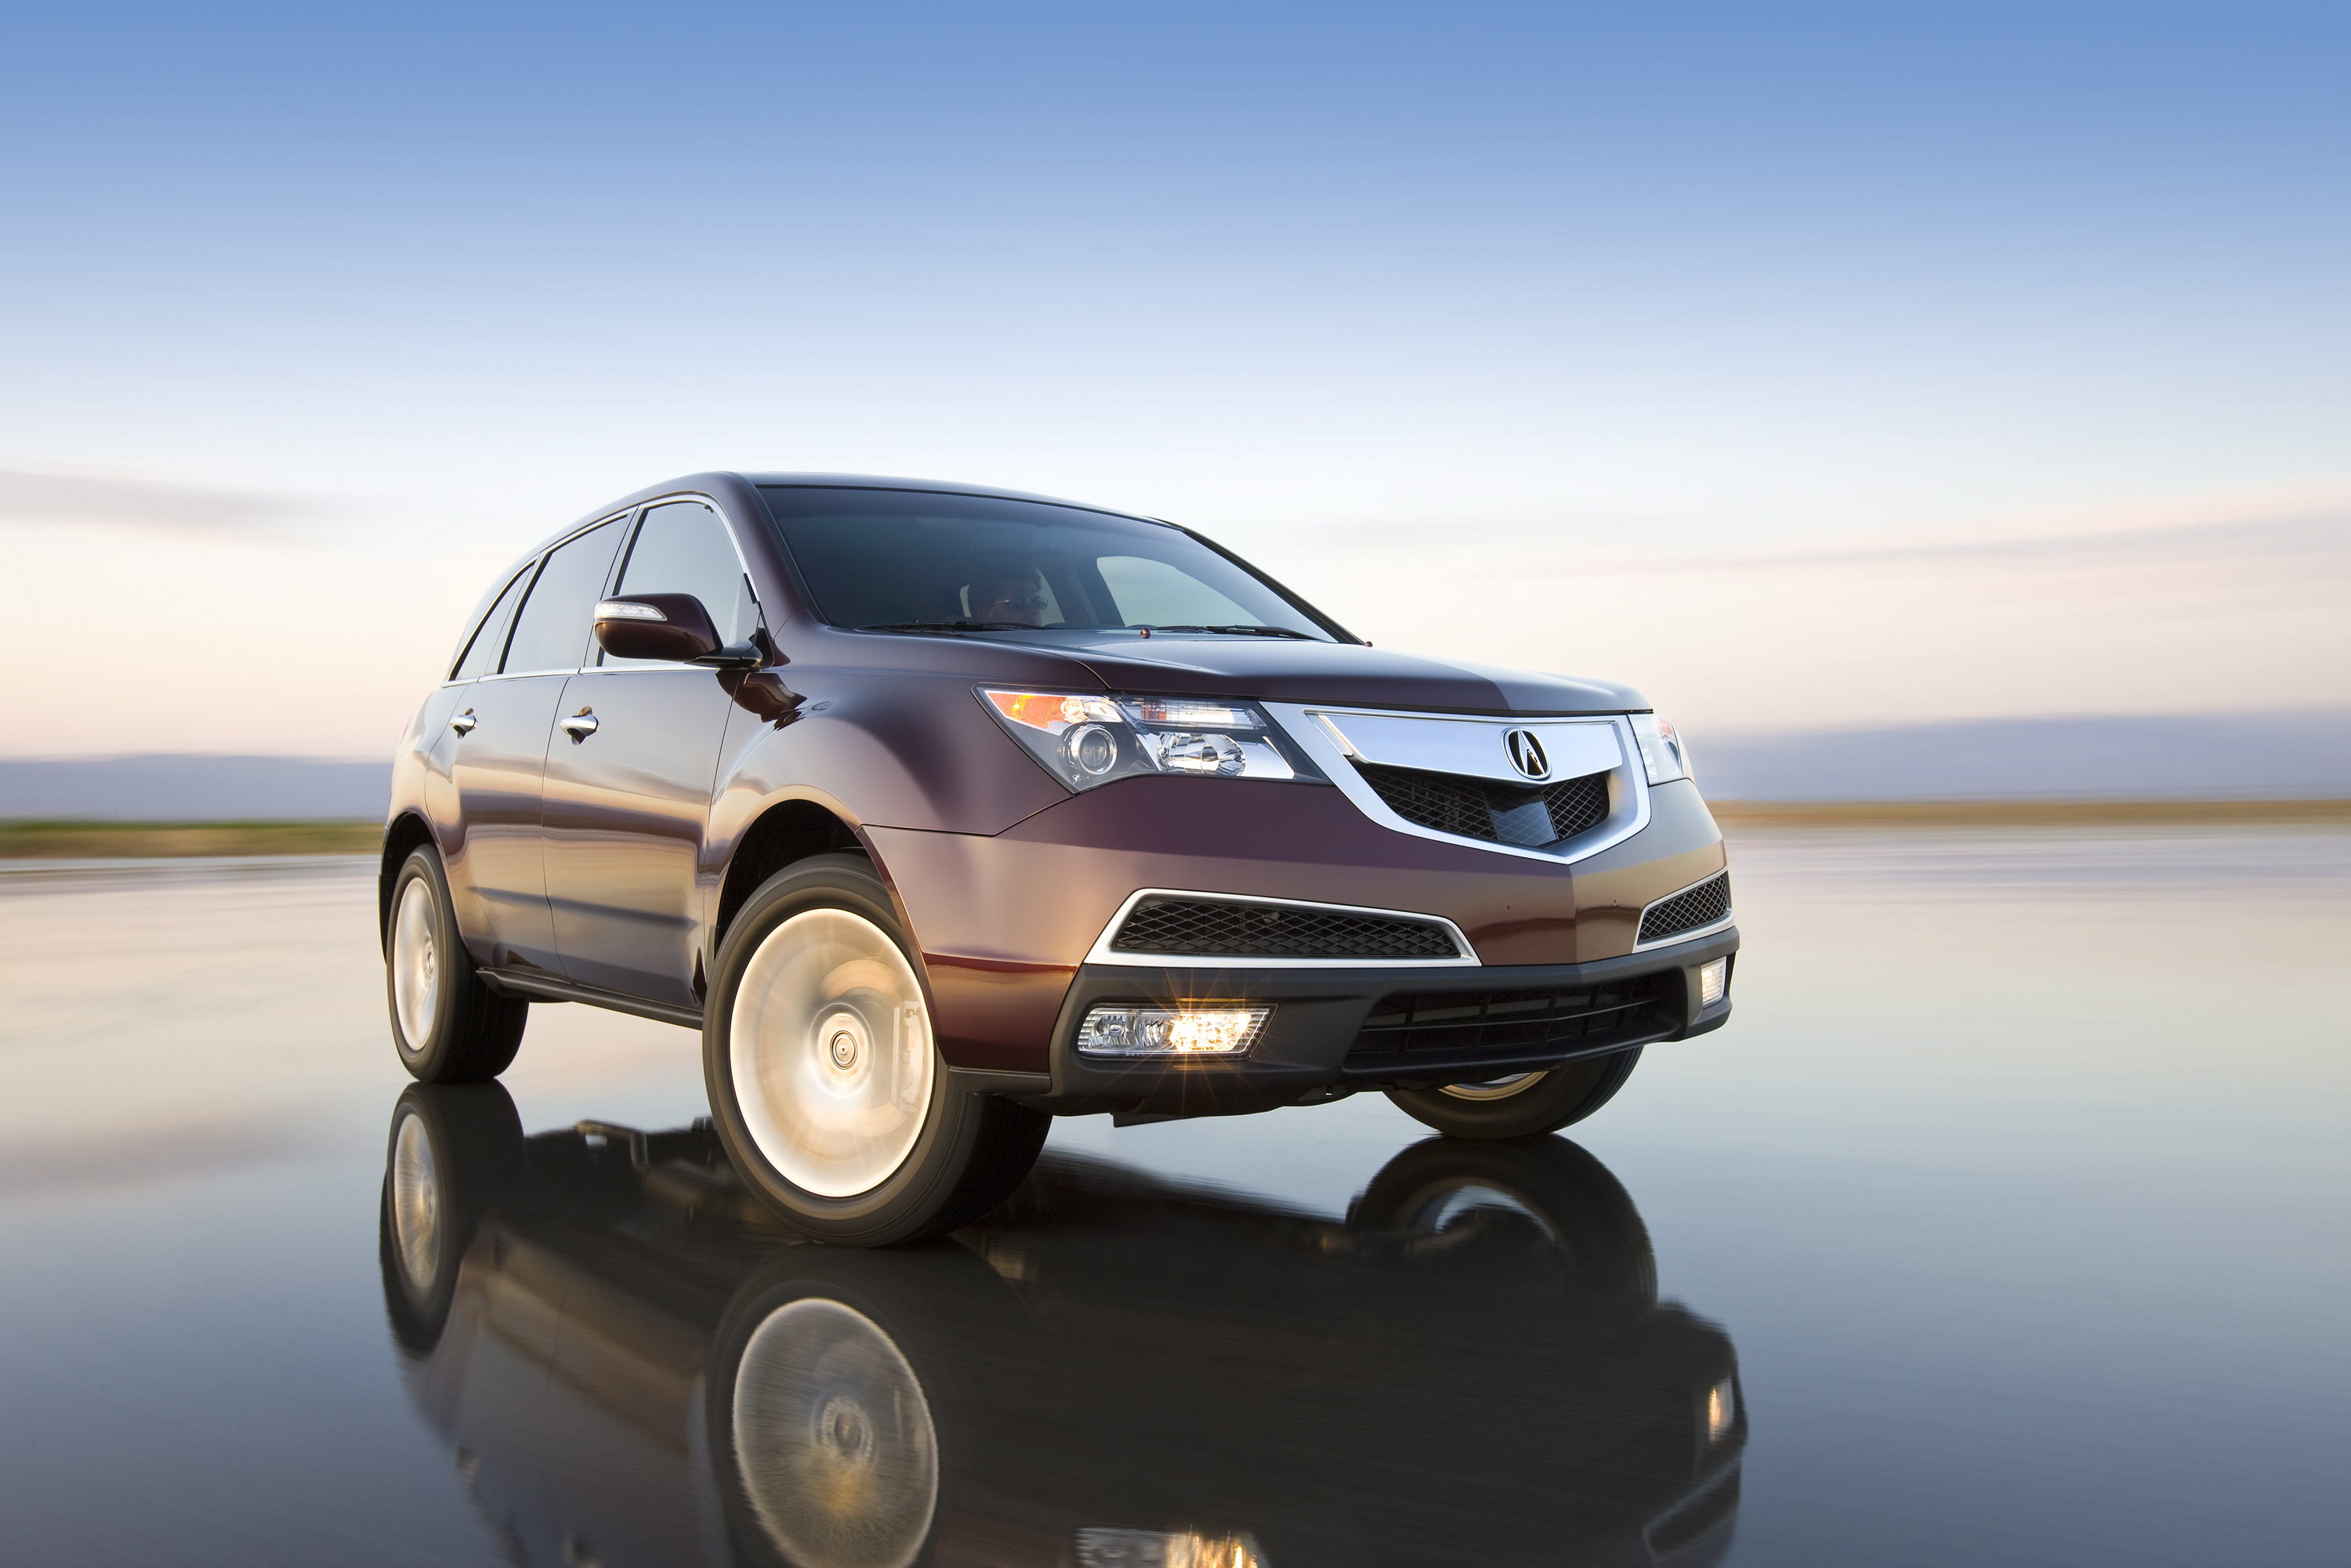 rivals luxury is by and mother amongst seat the acura s trip img odyssey crossover john seven offspring honda minivan unique mdx of road six straight a pilot father its leblanc touring